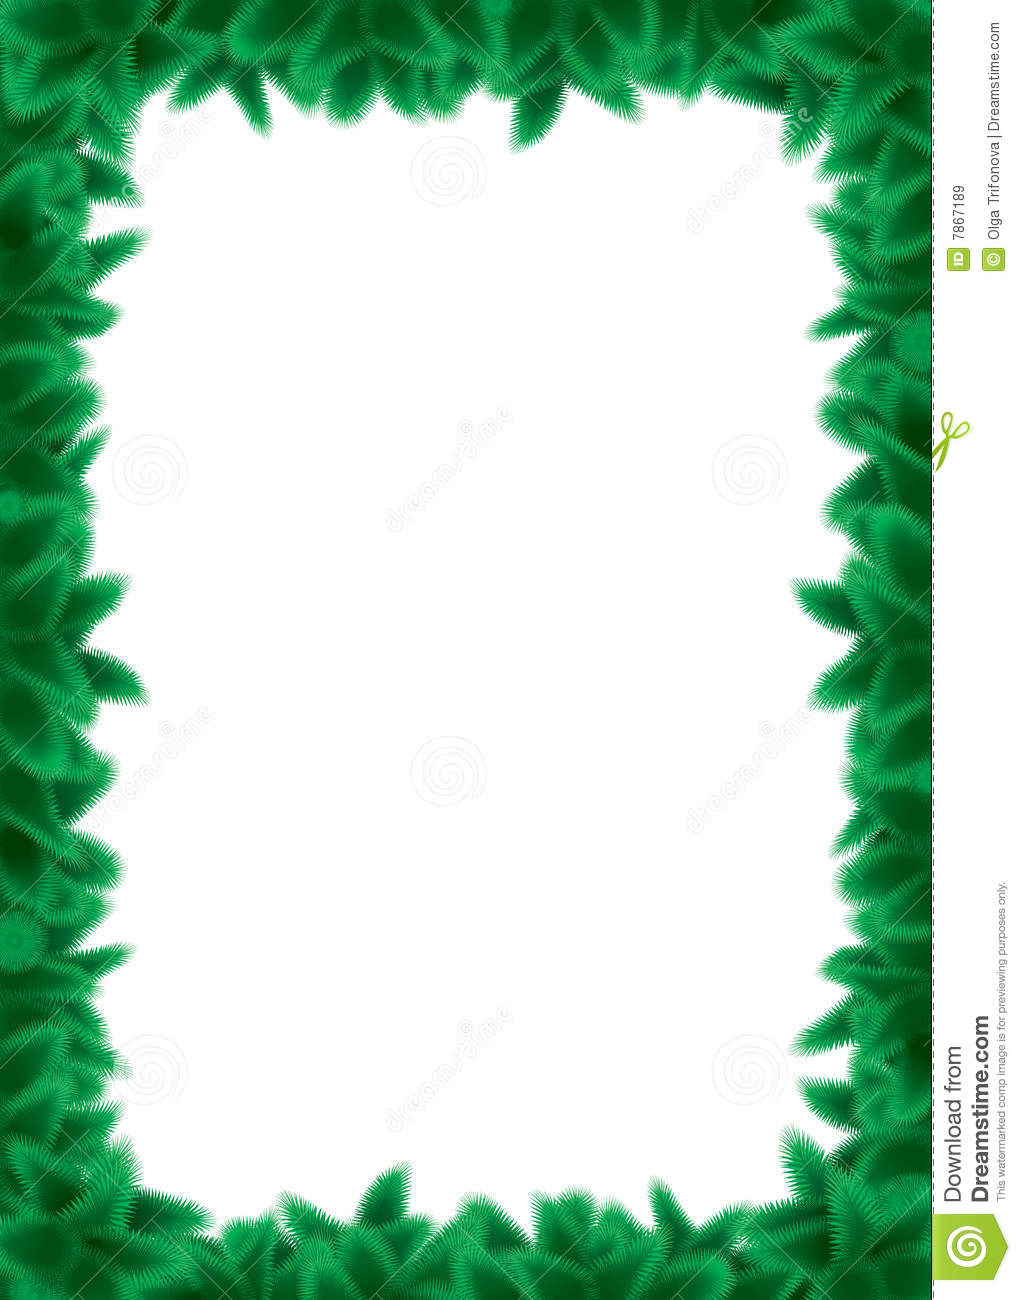 Pine Branch Border Royalty Free Stock Images - Image: 7867189